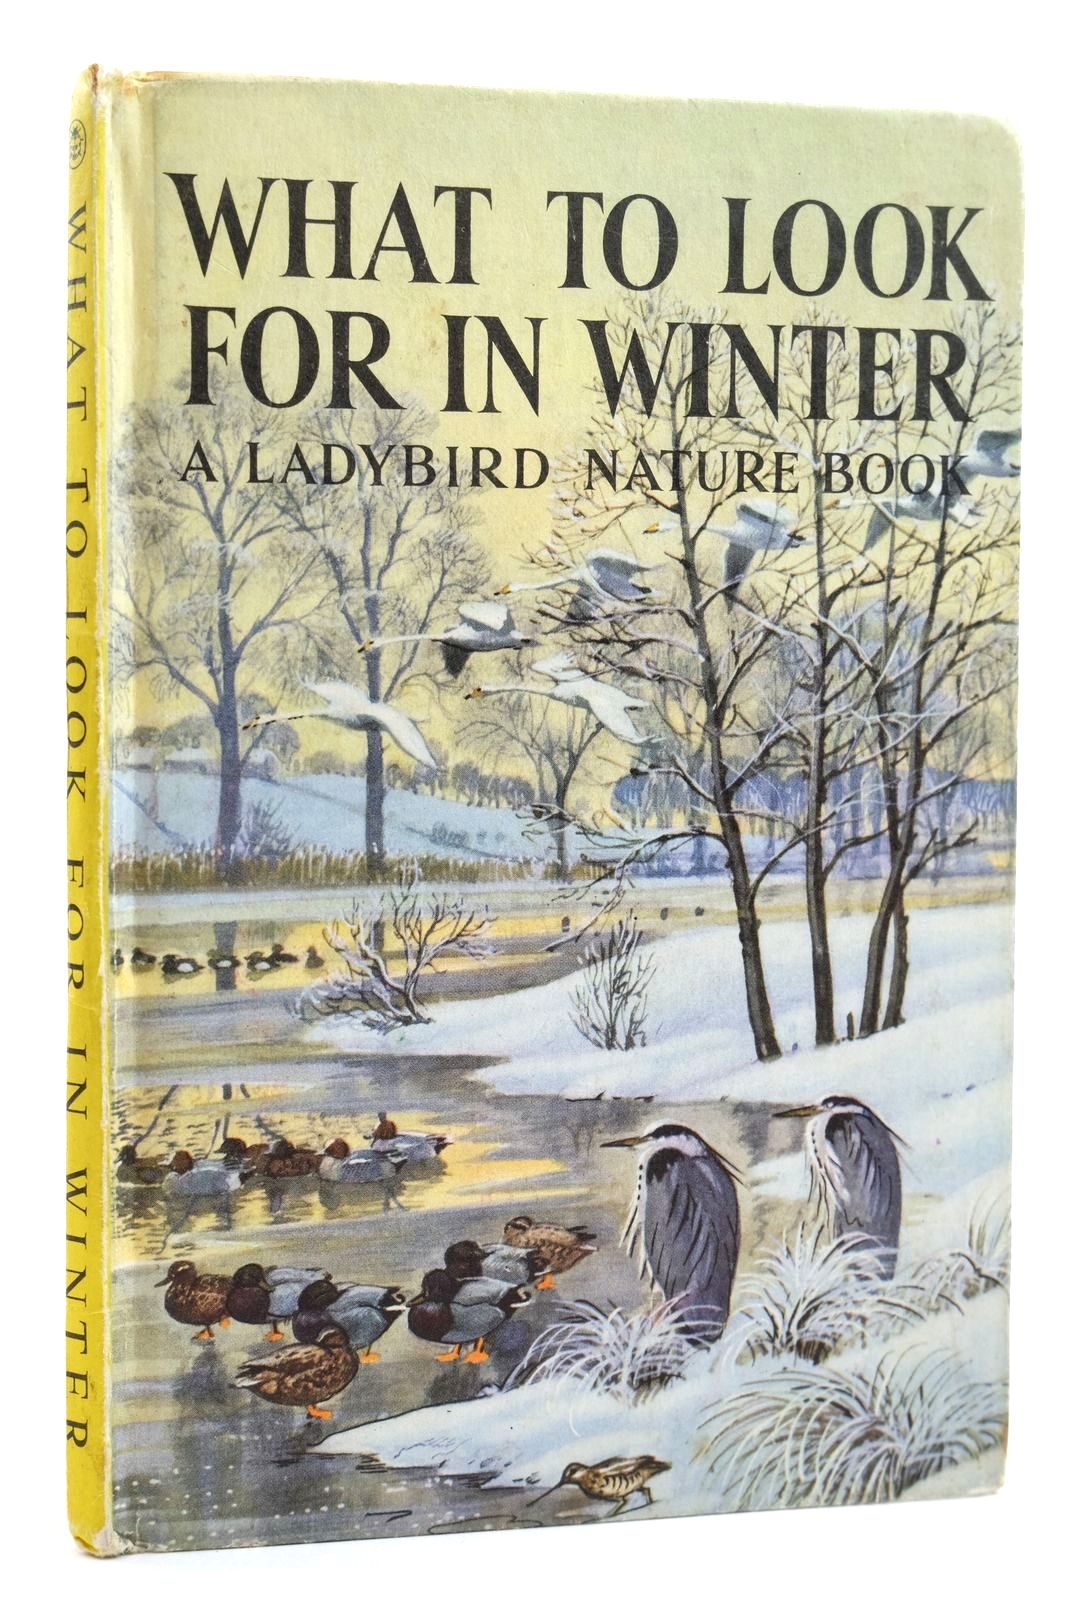 Photo of WHAT TO LOOK FOR IN WINTER written by Watson, E.L. Grant illustrated by Tunnicliffe, C.F. published by Wills & Hepworth Ltd. (STOCK CODE: 2131785)  for sale by Stella & Rose's Books